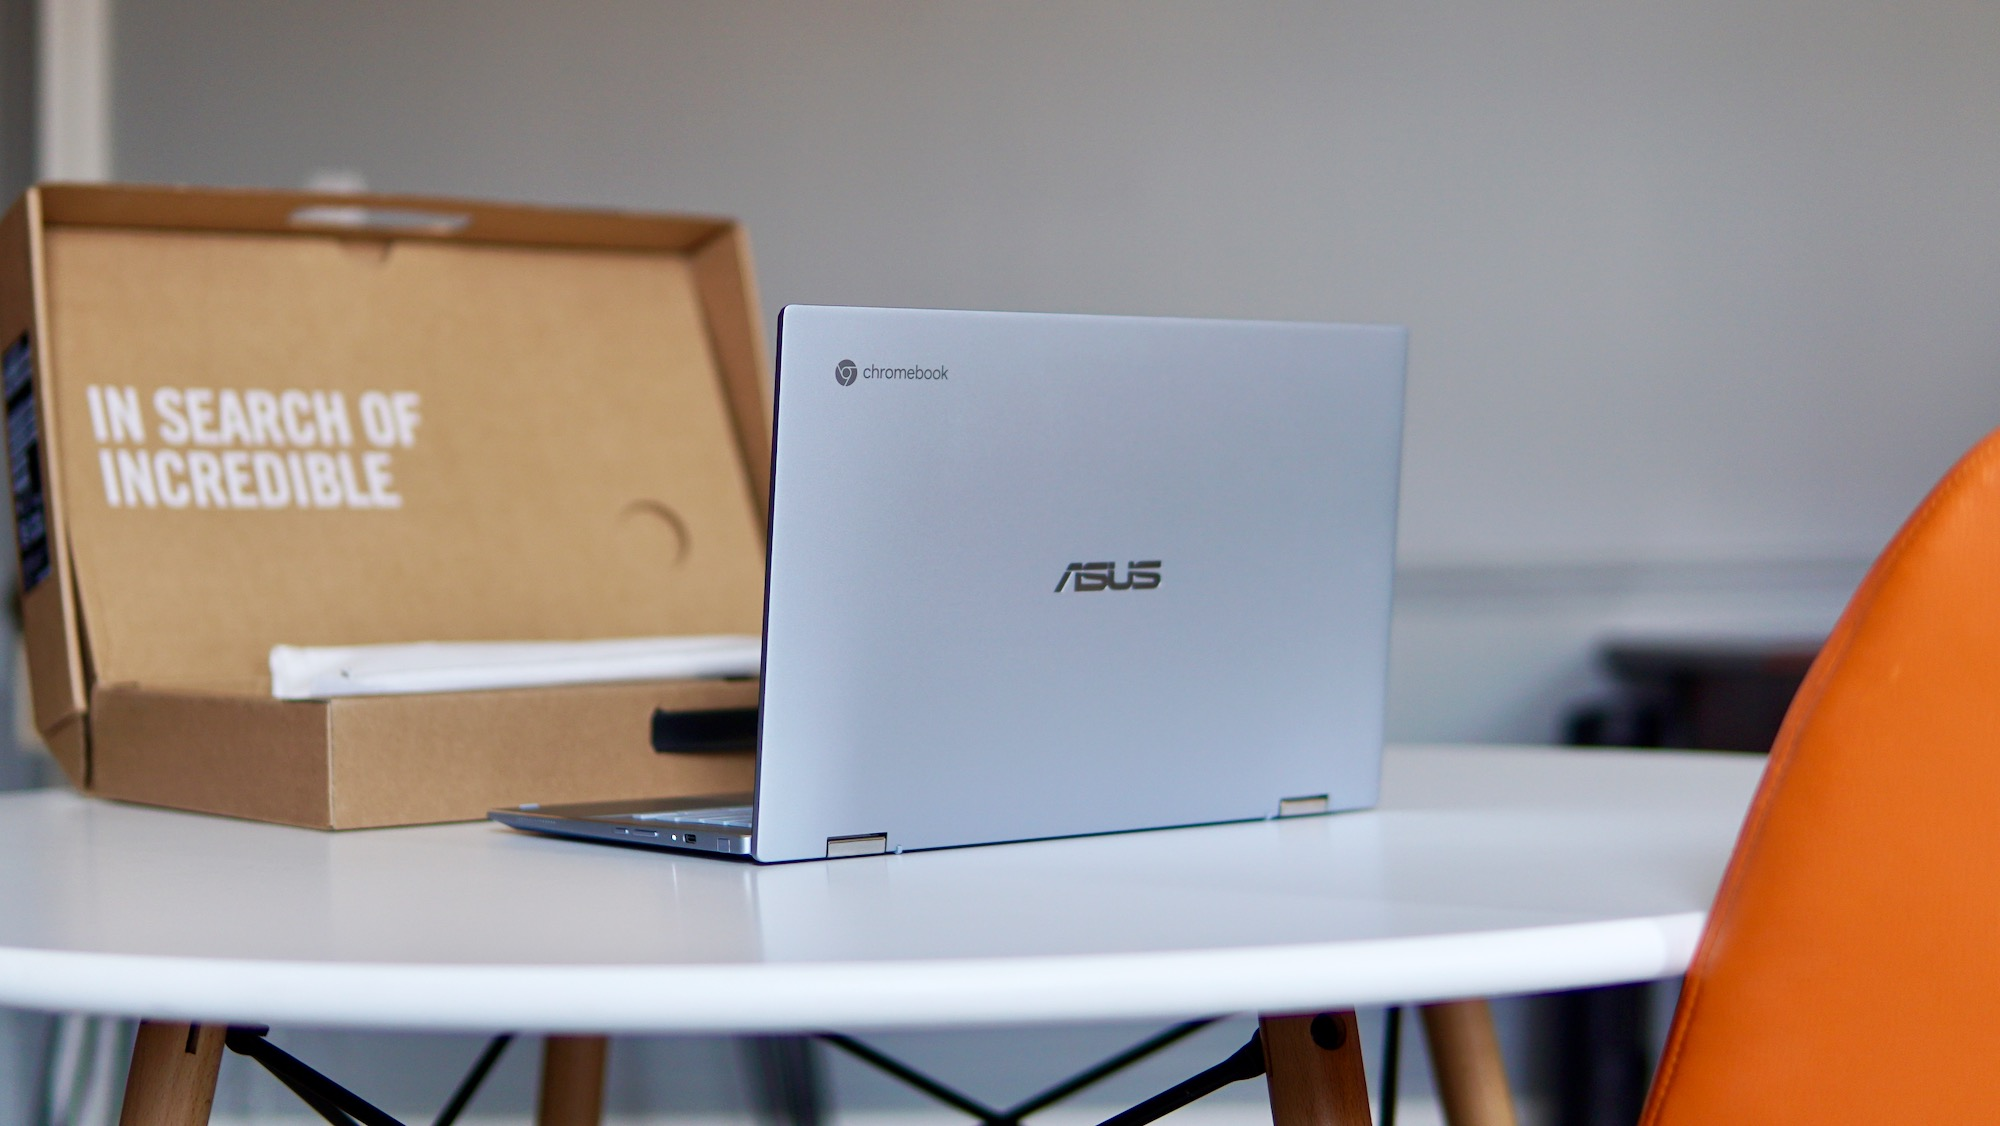 The powerful Core i5 ASUS Chromebook Flip CX5400 is now available